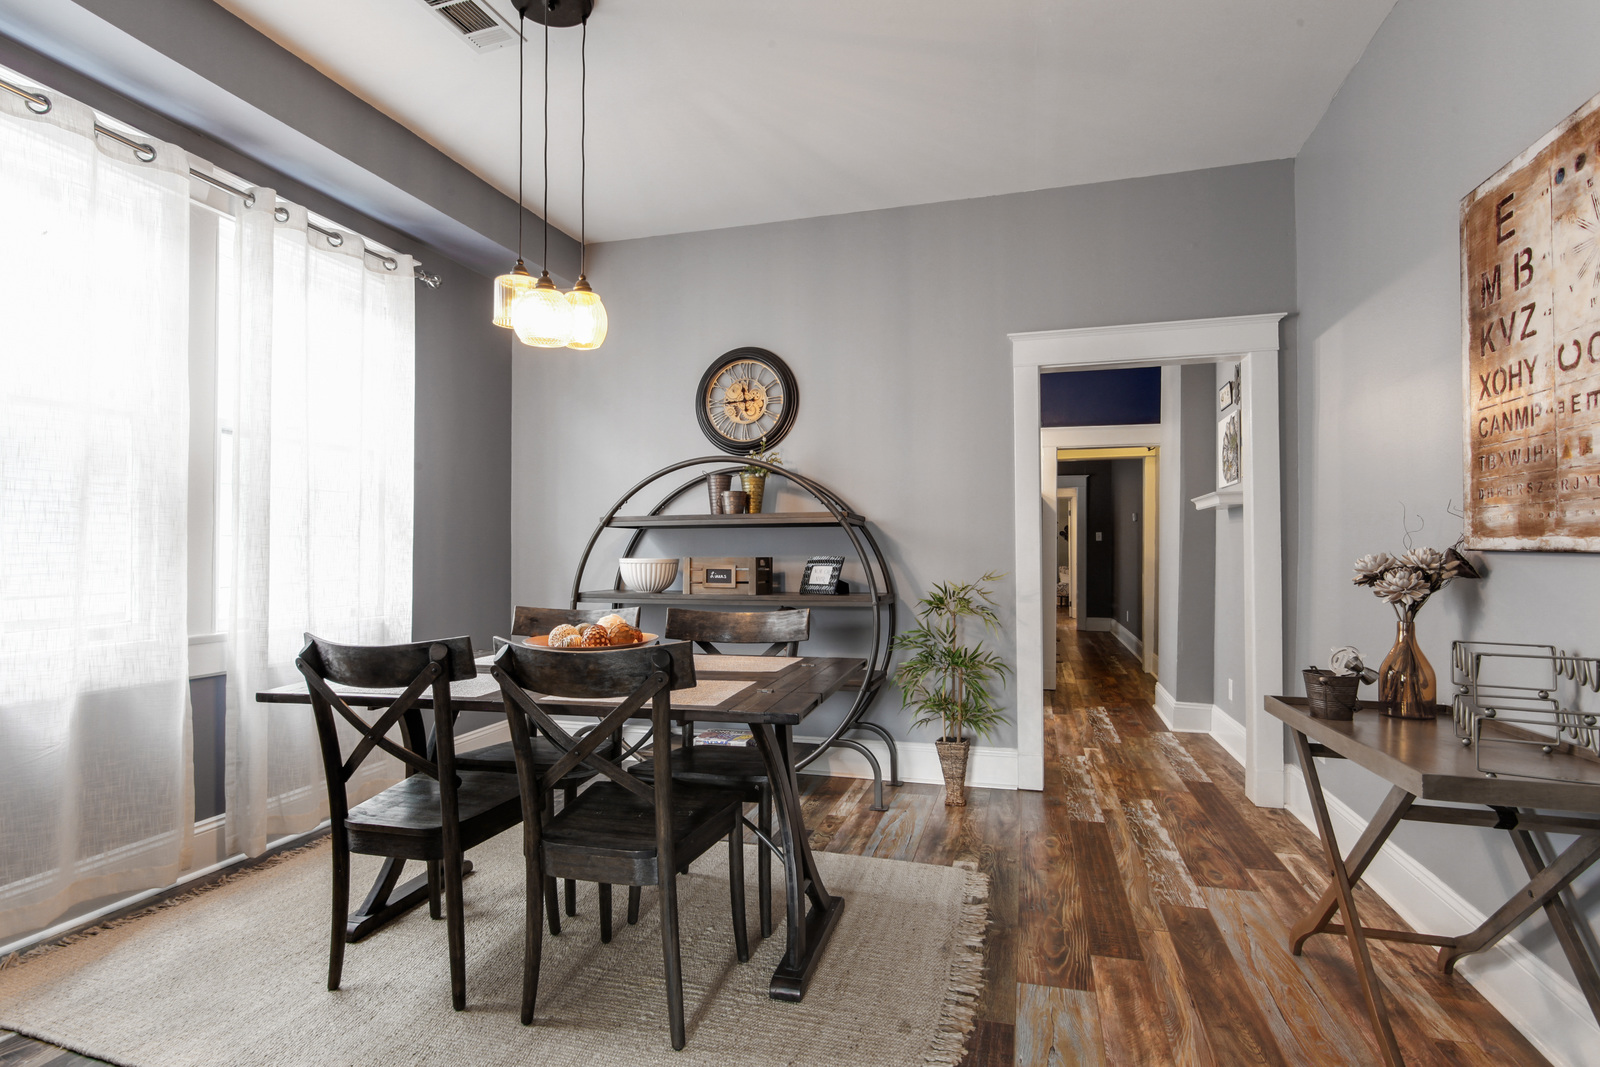 2328 Cambronne St. – Stylish Uptown Double for Sale in New Orleans!